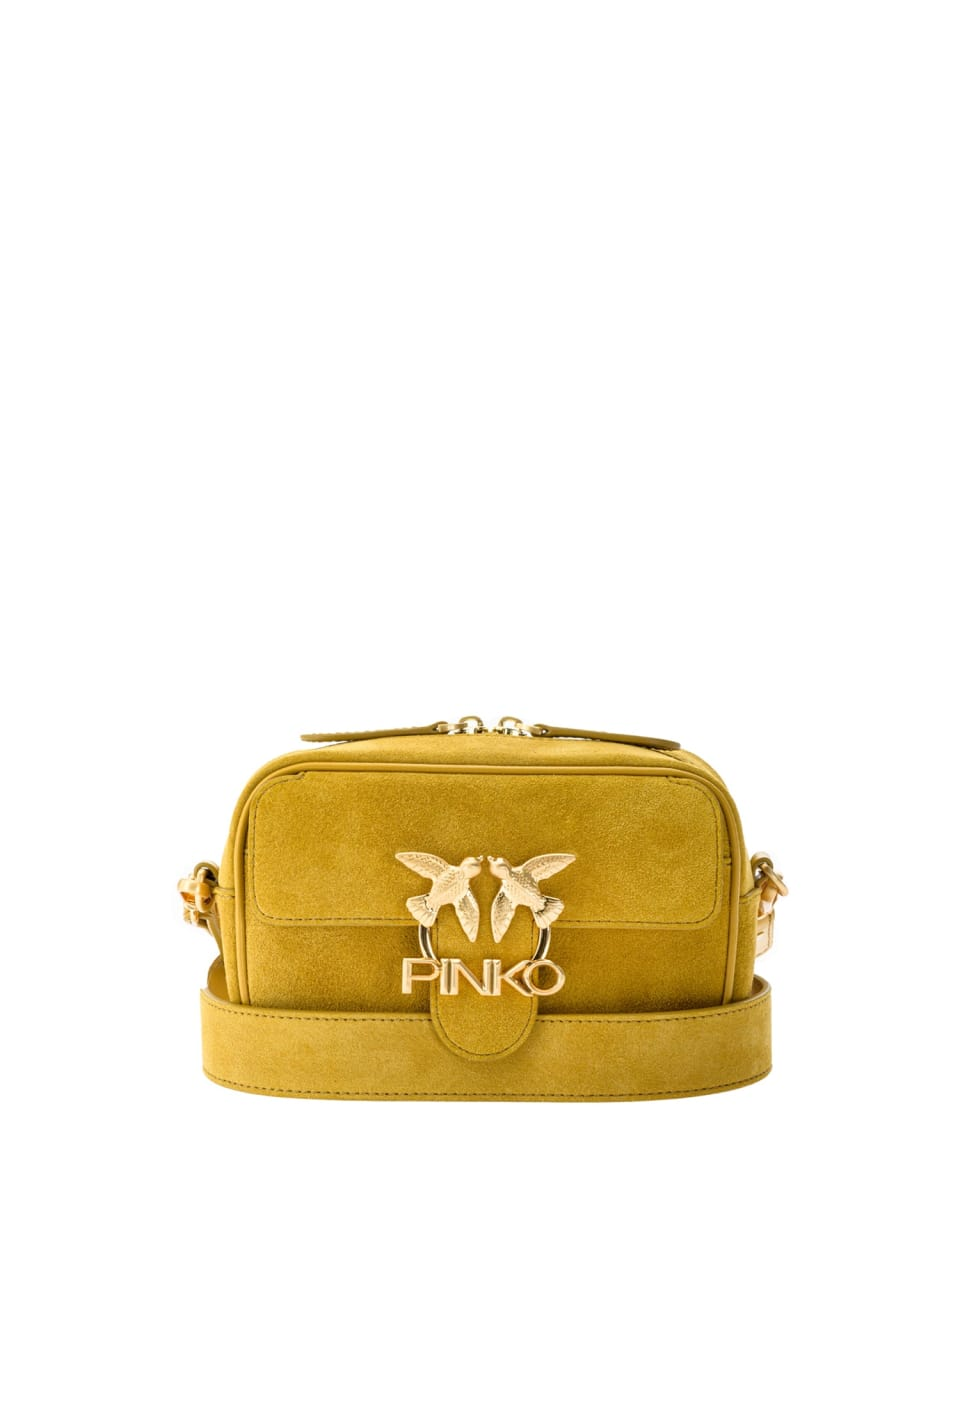 Baby Square Bag Seventies in suede and leather - Pinko